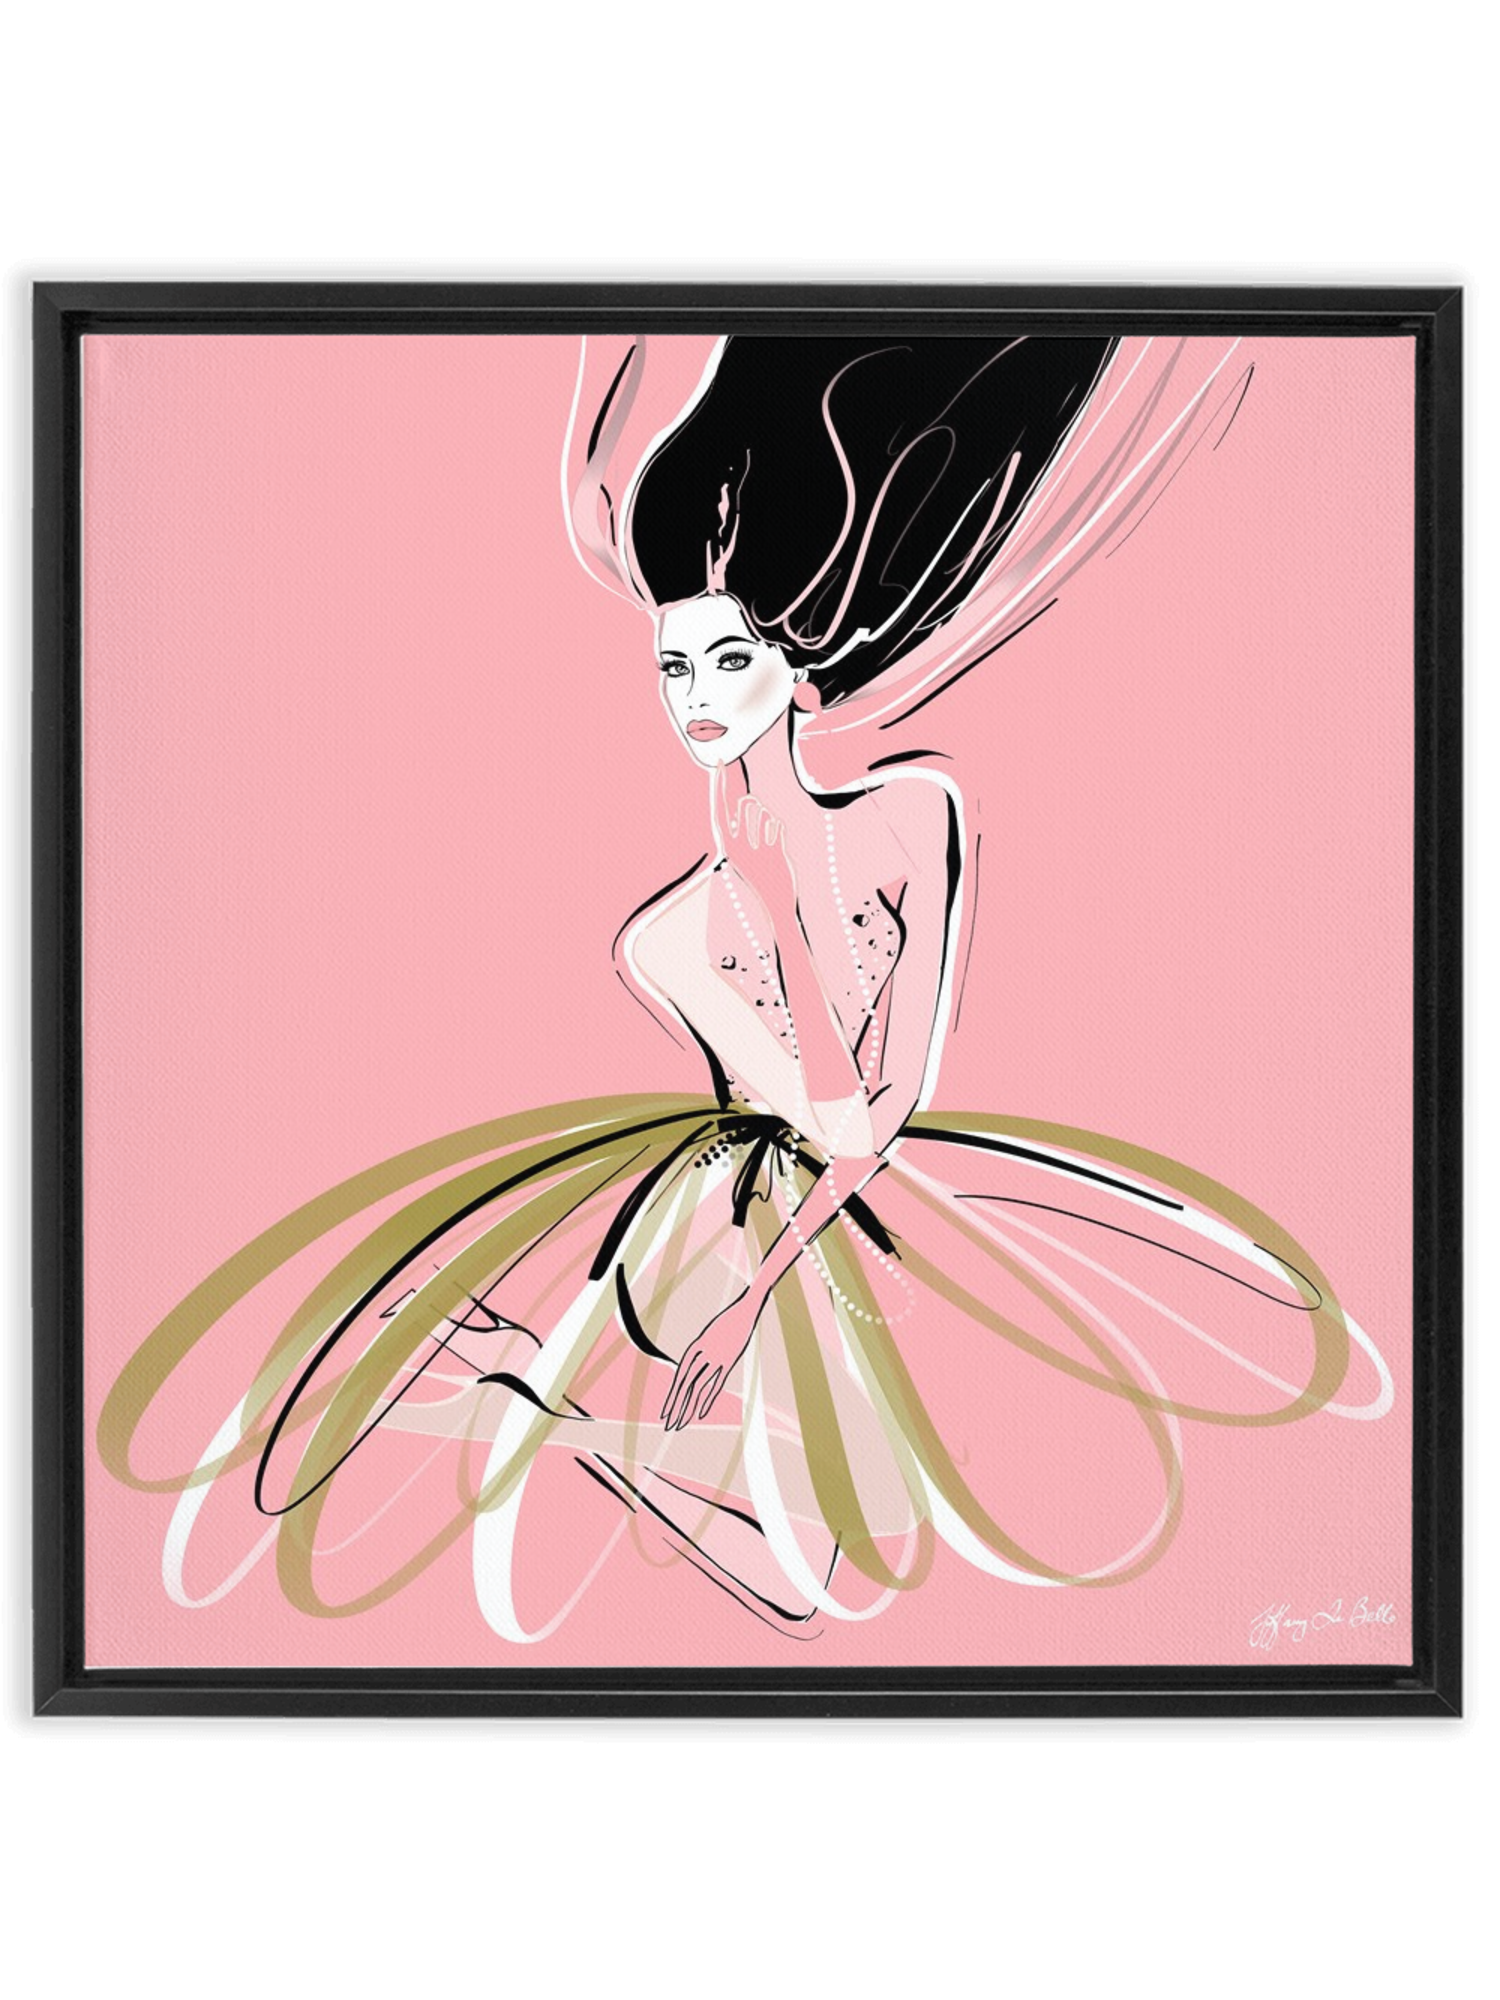 Pink and Pearls - Illustration - Canvas Gallery Print - Unframed or Framed - Tiffany La Belle